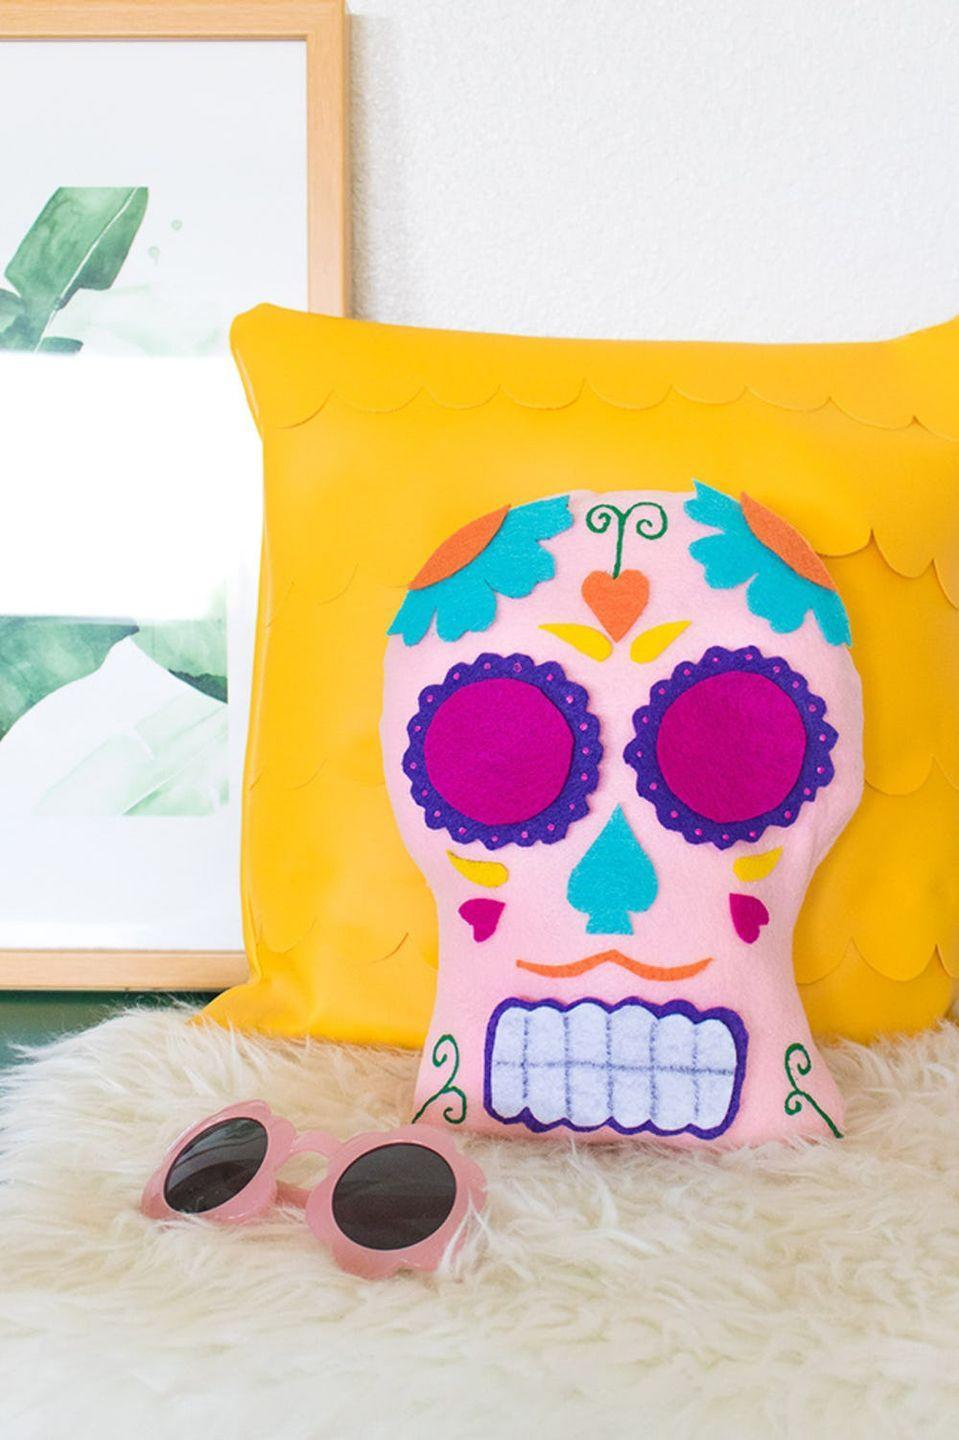 """<p>This DIY sugar skull pillow may look too beautiful and sophisticated to be an easy kids craft, but we assure you, it is! The """"face"""" is constructed almost entirely out of scraps of colorful felt. Cut out shapes for your kids (ages 8 and up will do best with this one), then let them construct the design with fabric glue.</p><p><strong>Get the tutorial at <a href=""""https://www.clubcrafted.com/2017/10/19/diy-dia-de-los-muertos-sugar-skull-pillow-a-video/"""" rel=""""nofollow noopener"""" target=""""_blank"""" data-ylk=""""slk:Club Crafted"""" class=""""link rapid-noclick-resp"""">Club Crafted</a></strong><strong>.</strong> </p>"""